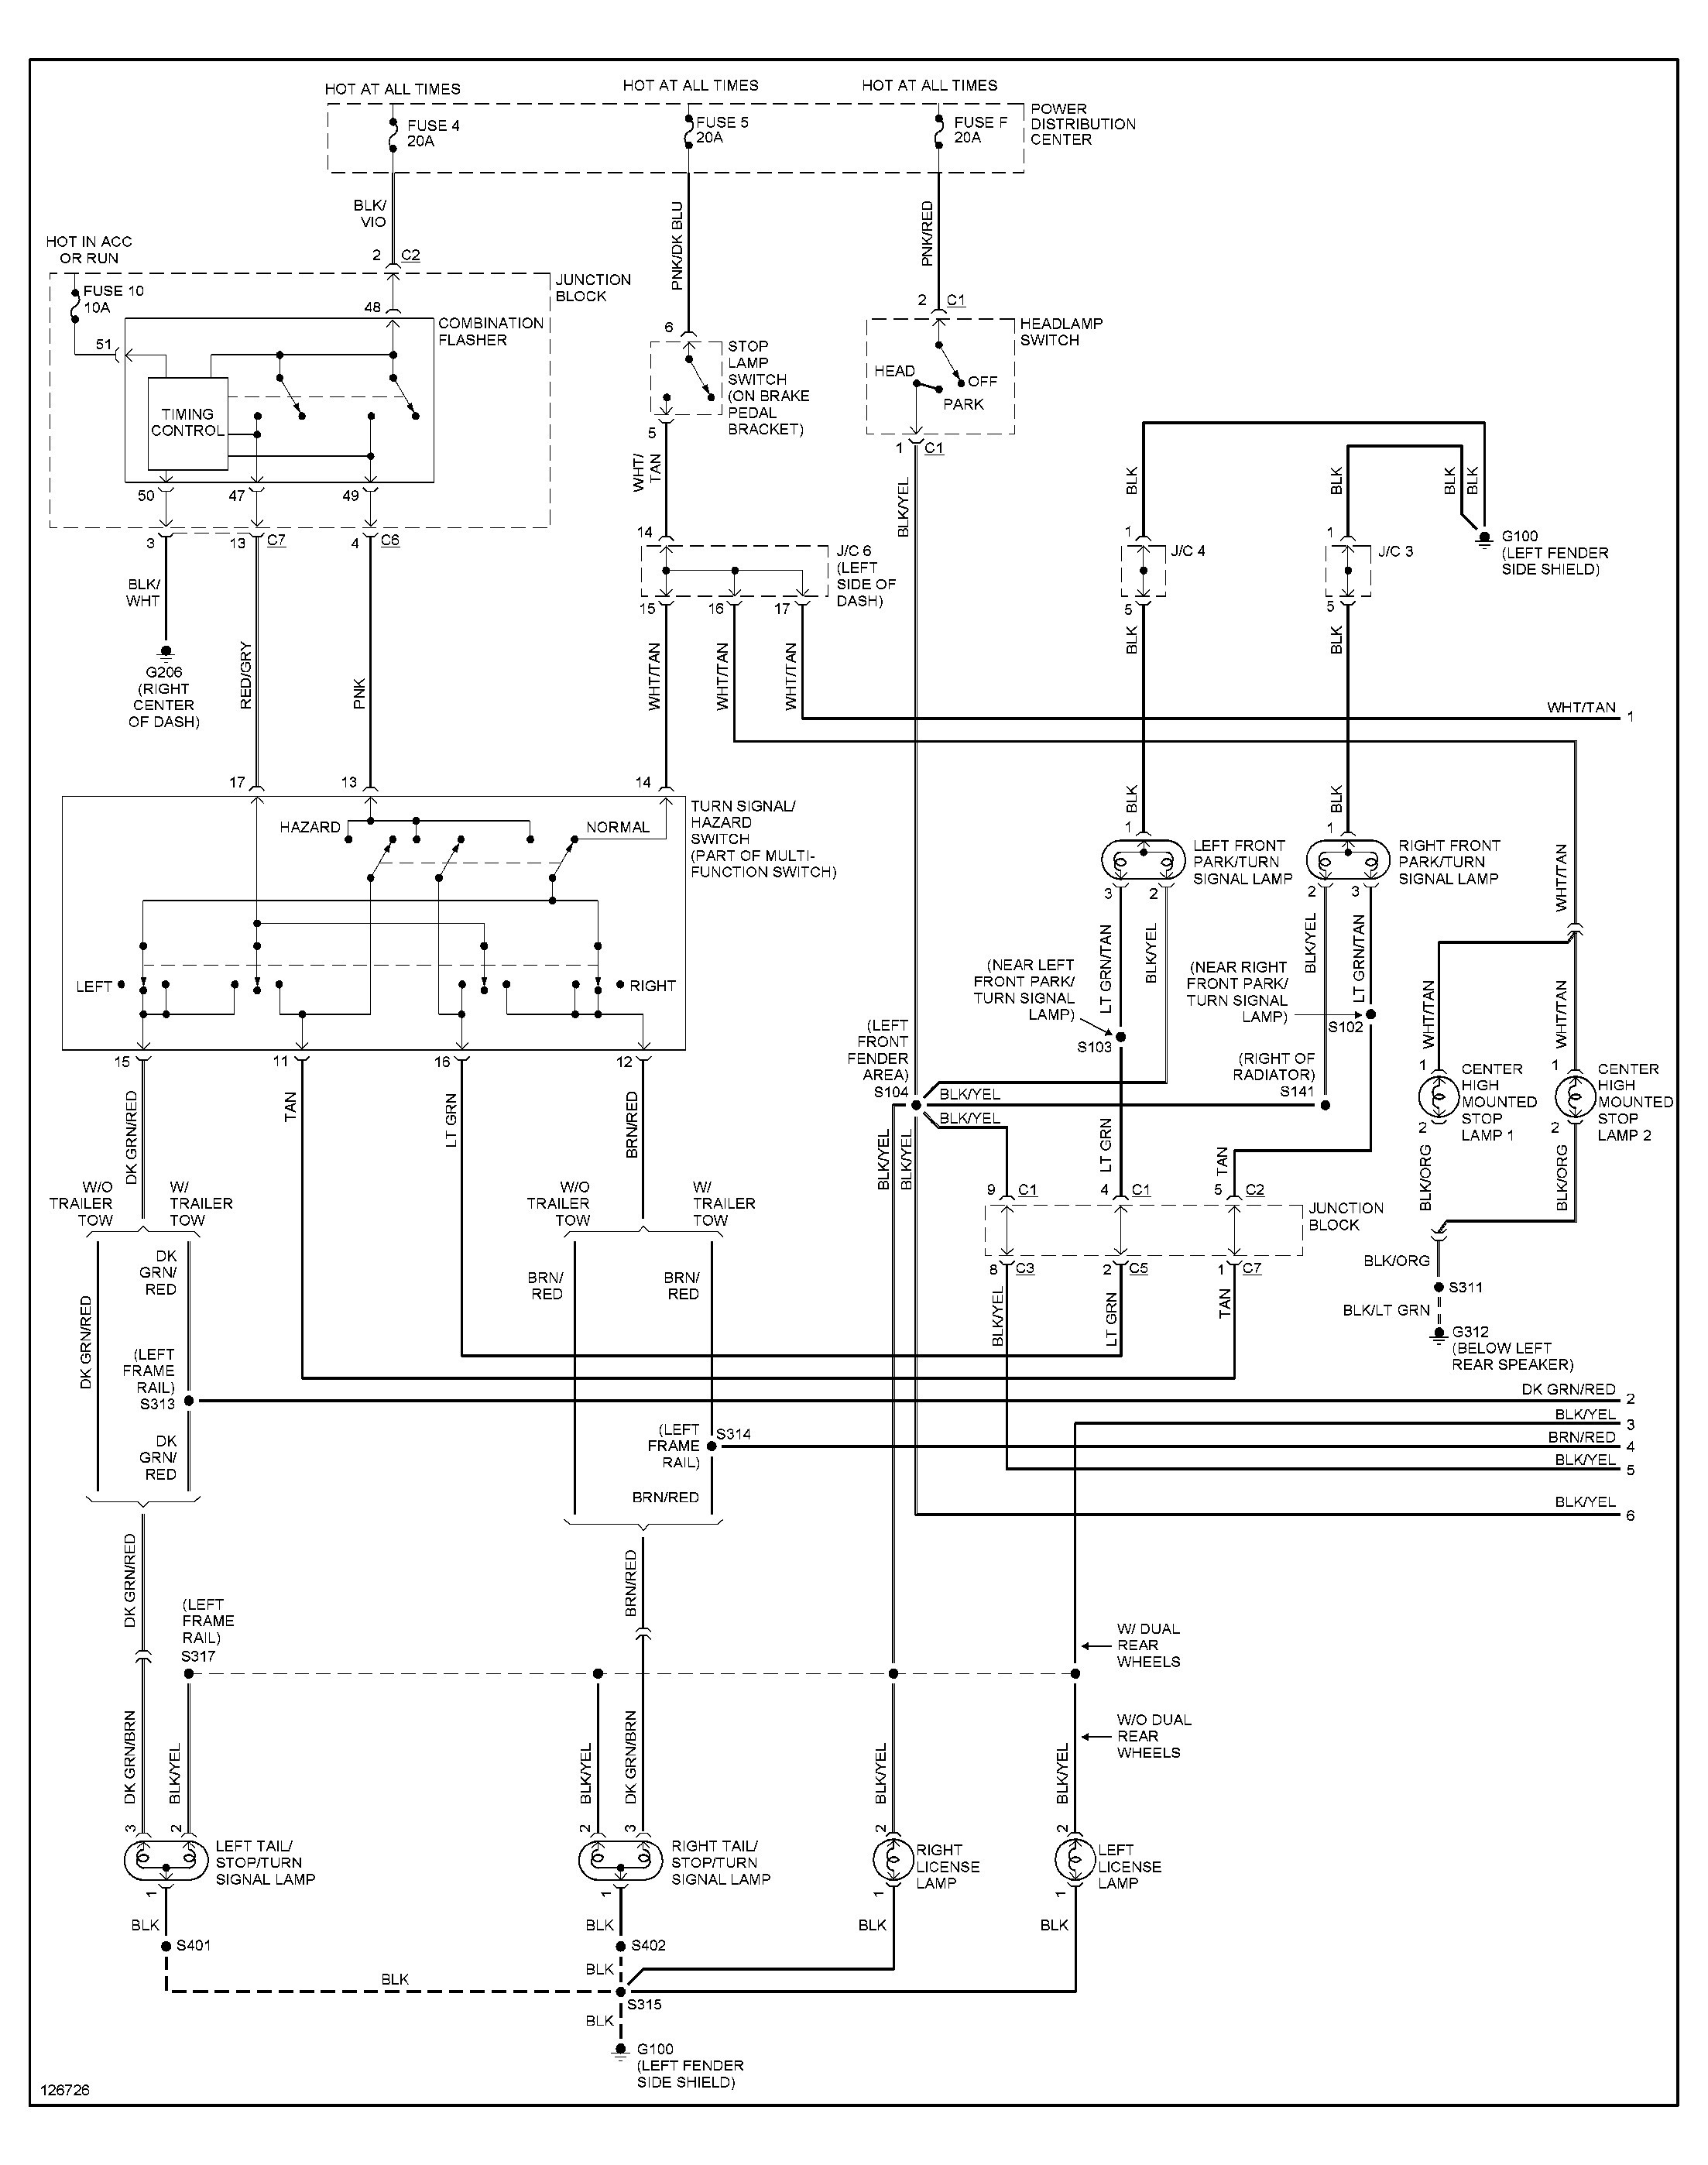 2003 Dodge Ram Wiring Diagram 1998 Dodge Ram 1500 Light Wiring Diagrams Data Wiring Diagrams • Of 2003 Dodge Ram Wiring Diagram